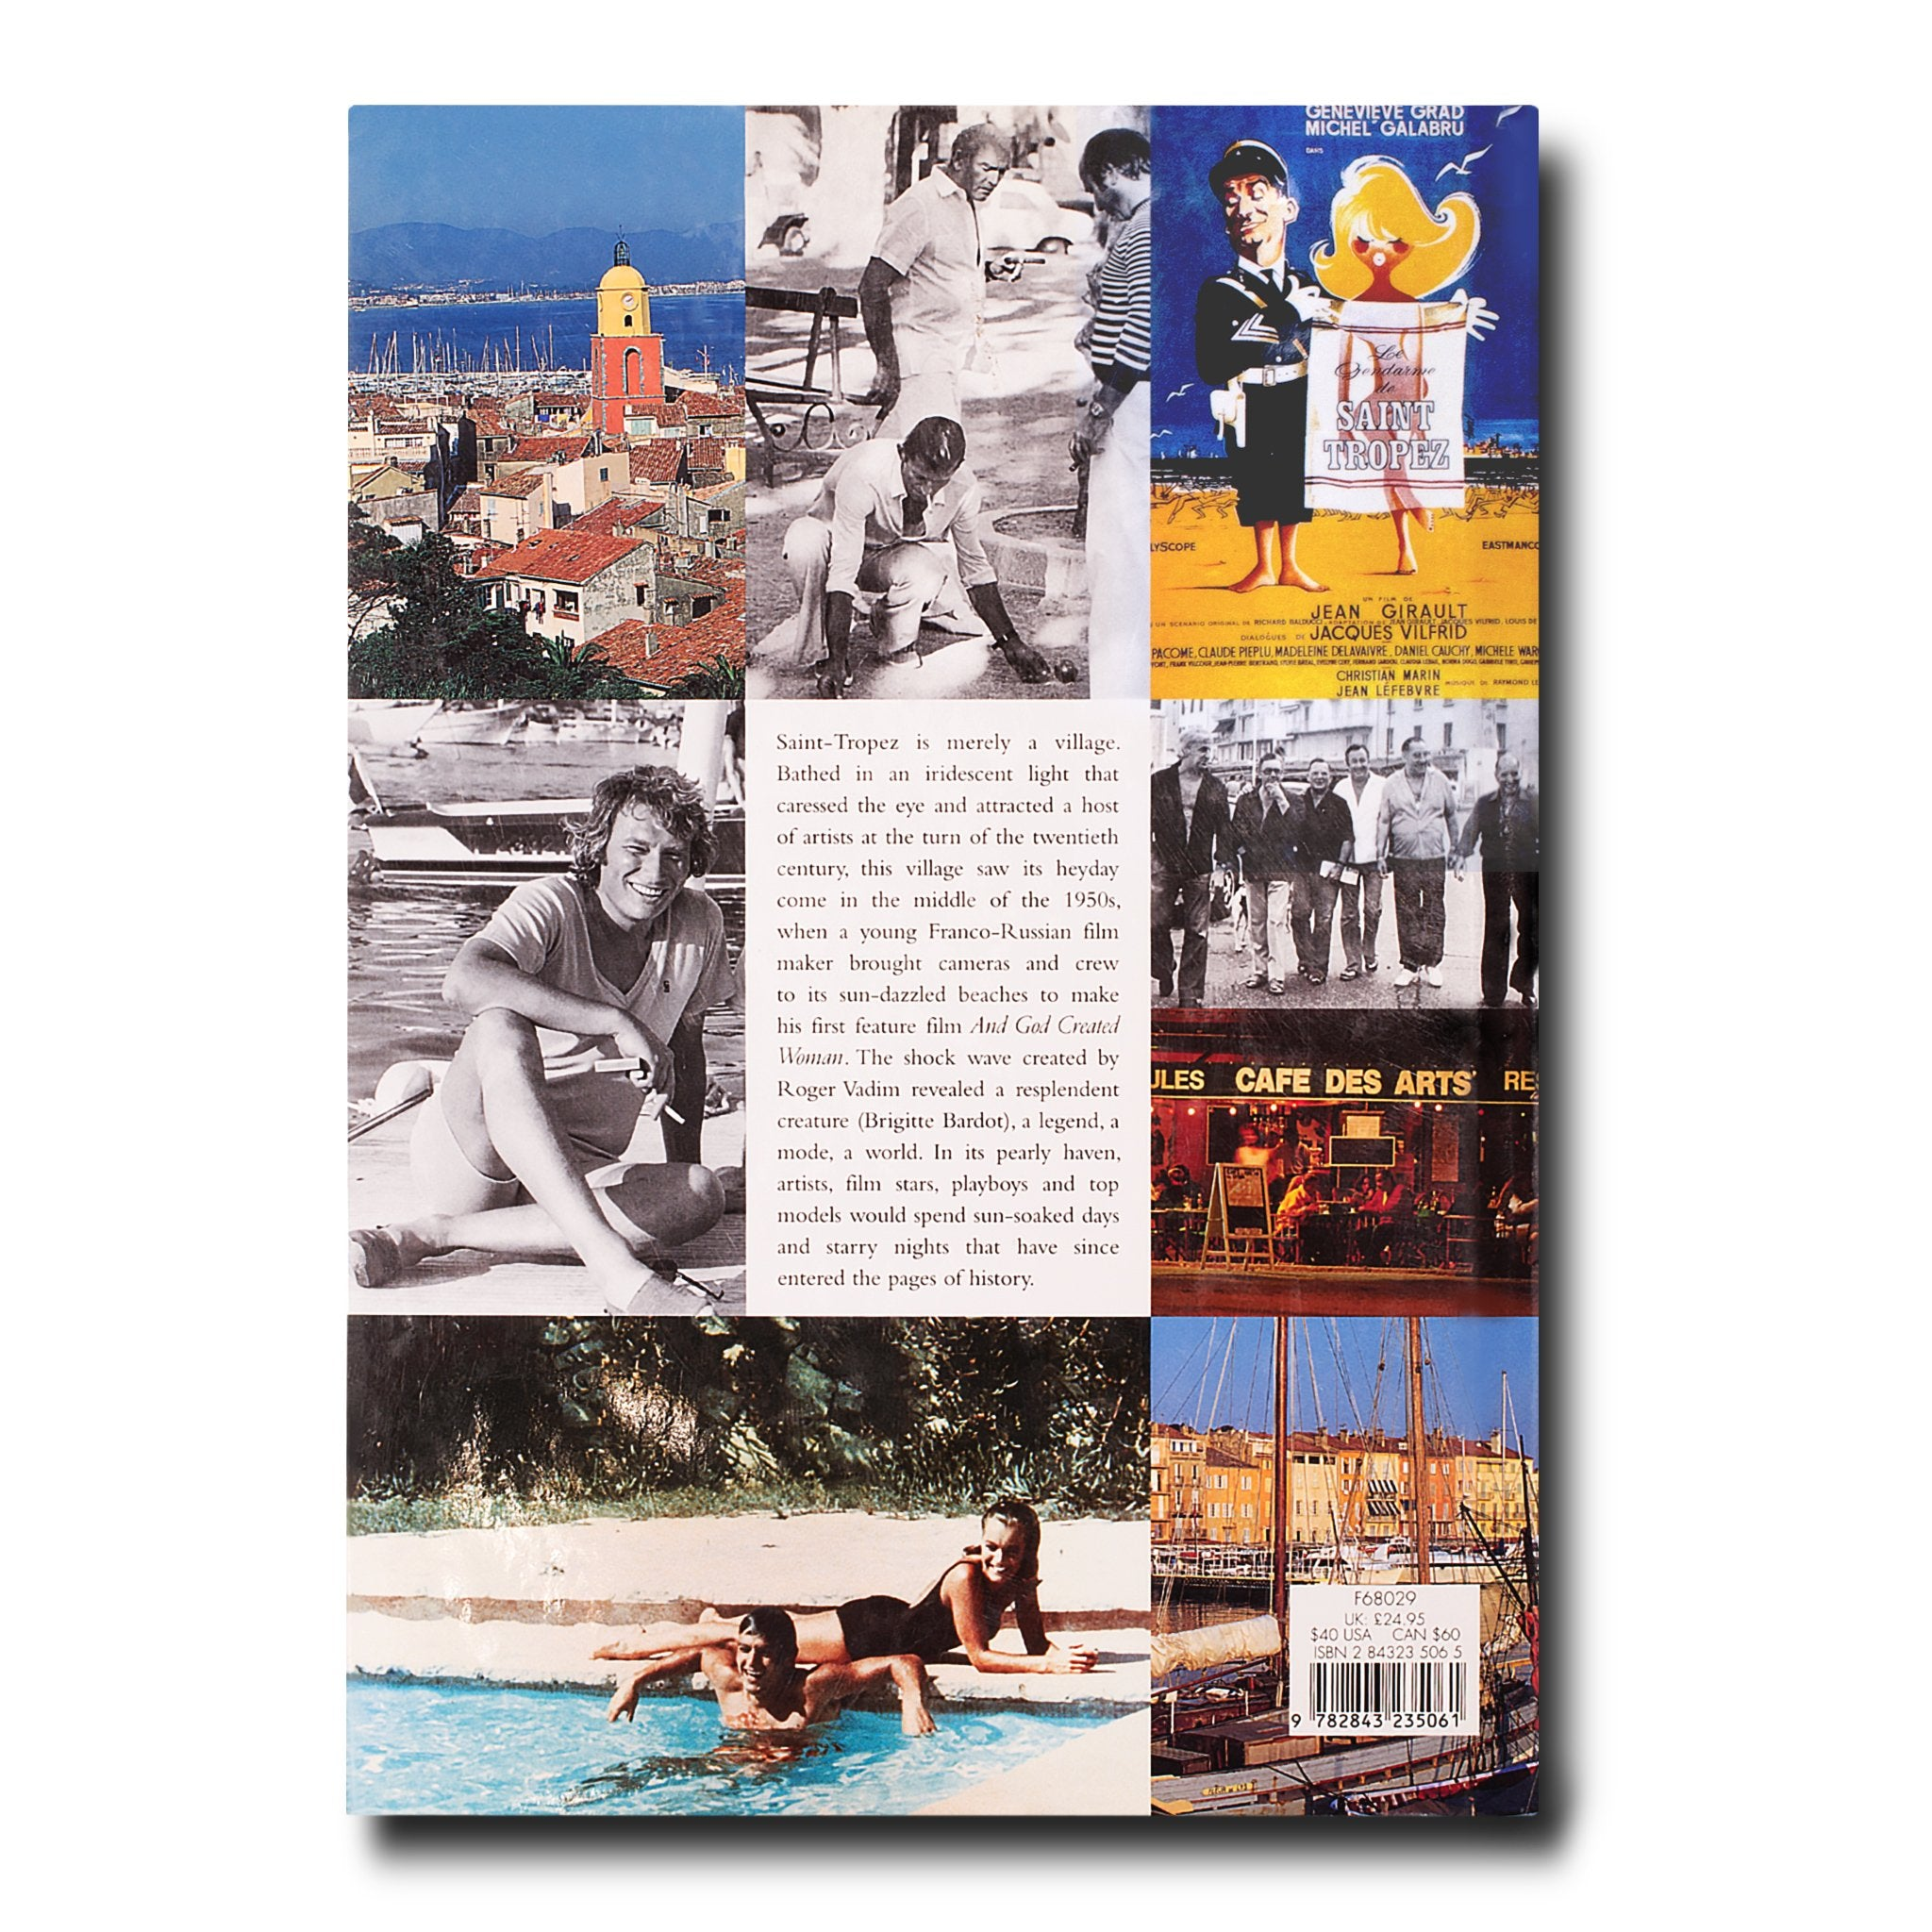 In the Spirit of St. Tropez - Assouline